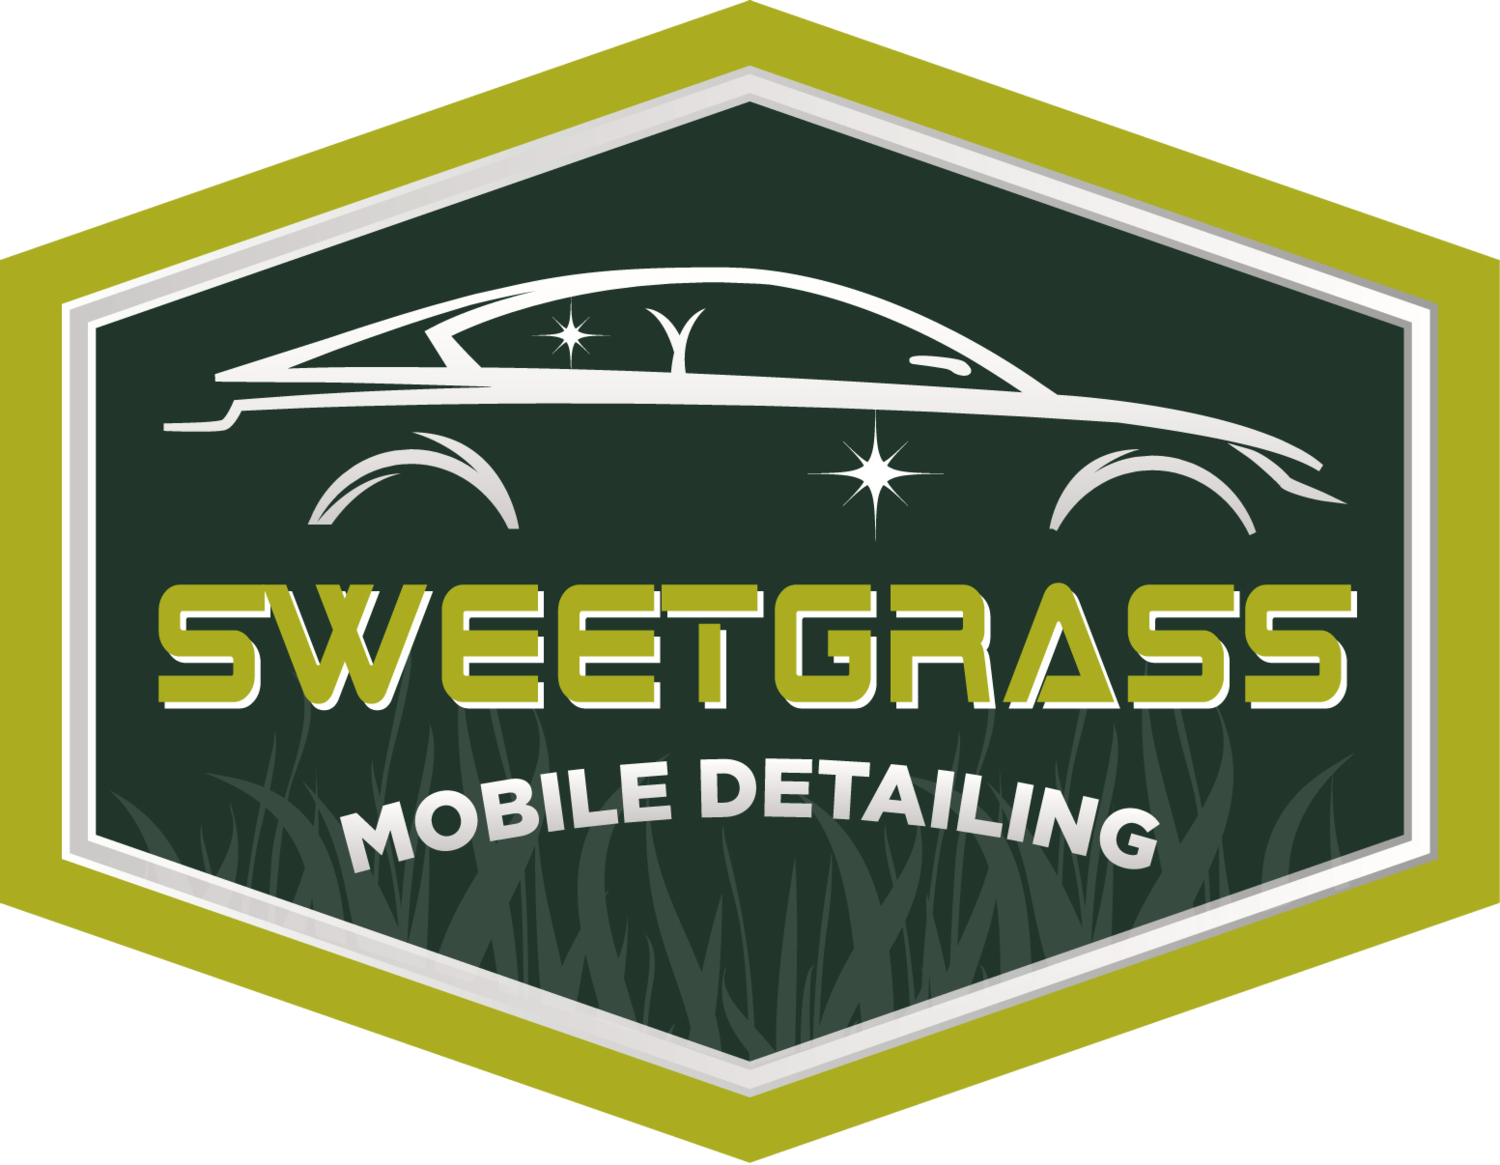 Sweetgrass Mobile Detailing (843) 496-9842